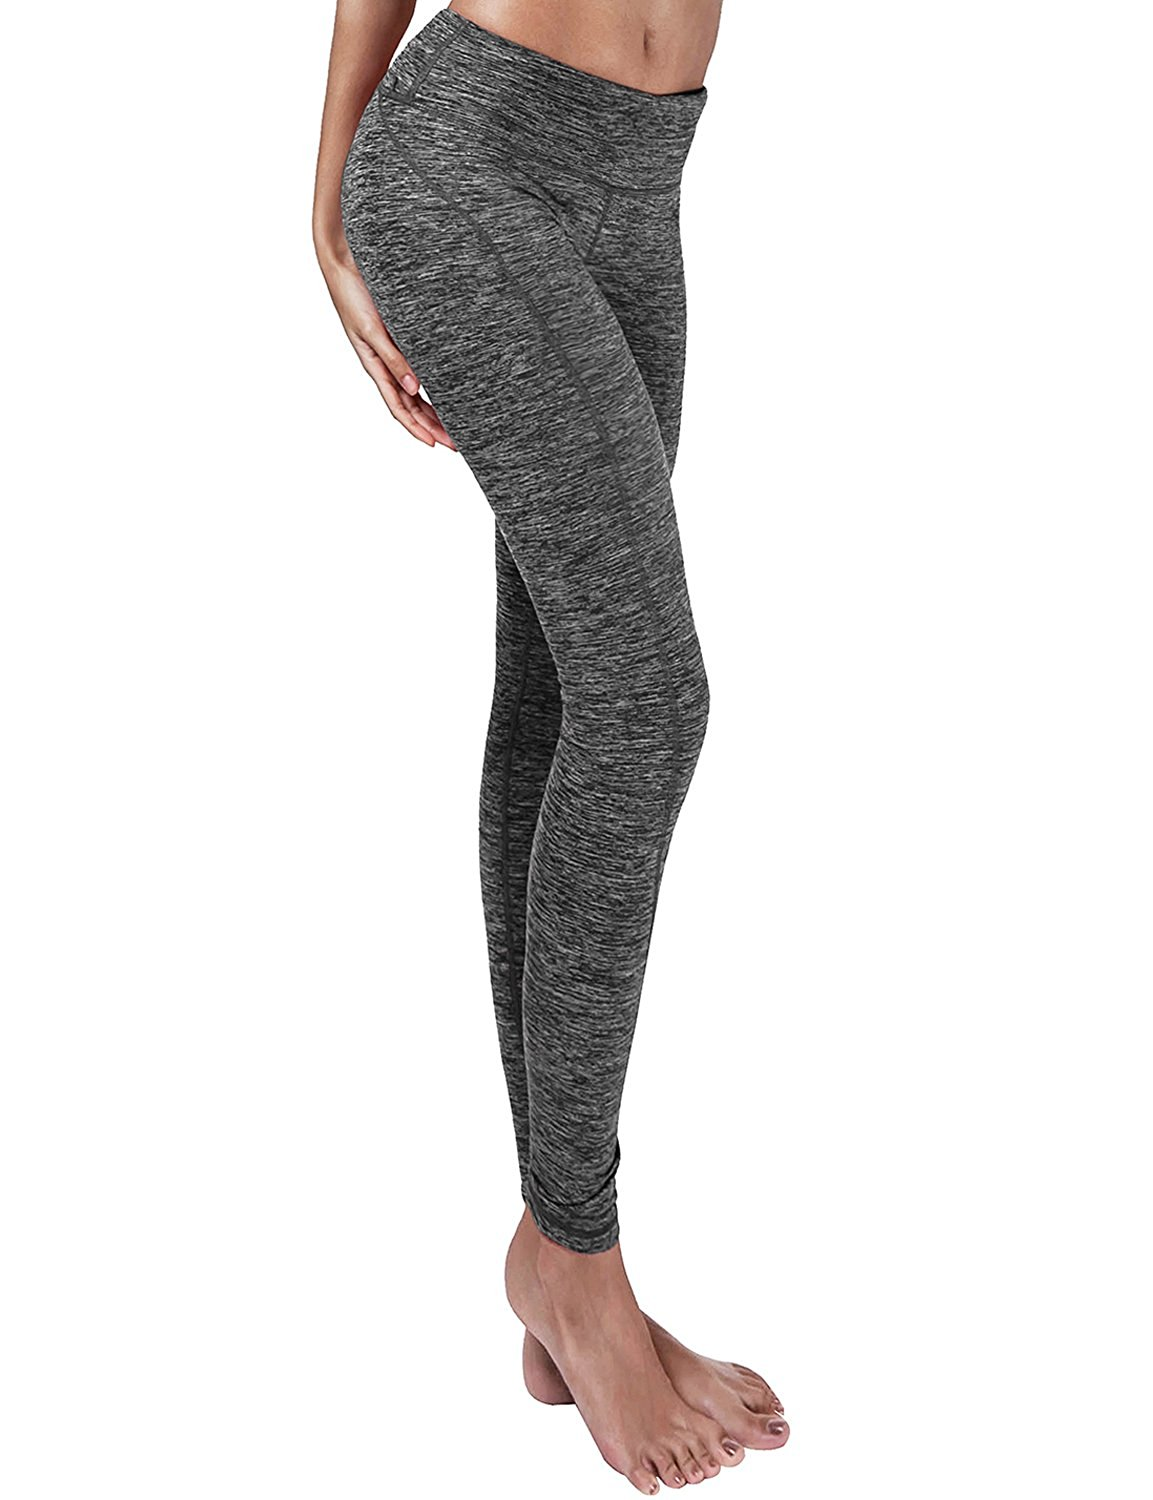 0b380953639a2 Yogareflex Women's Side Pocket Fitness Workout Running Yoga Active Legging  Pants